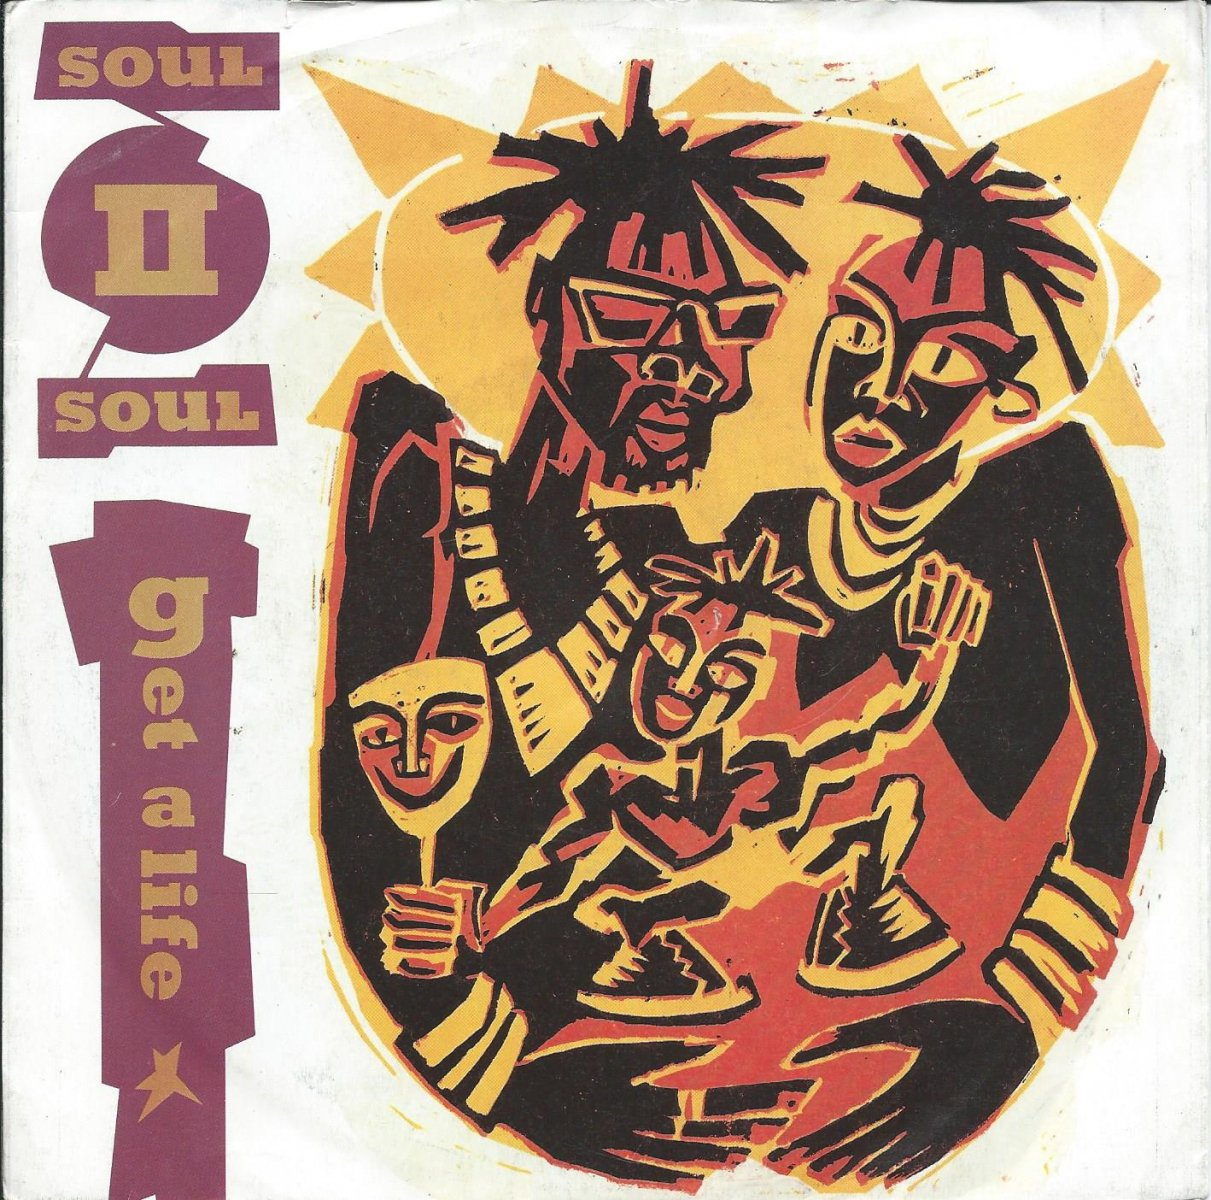 SOUL II SOUL ‎/ GET A LIFE / JAZZIE'S GROOVE (NEW VERSION) (7